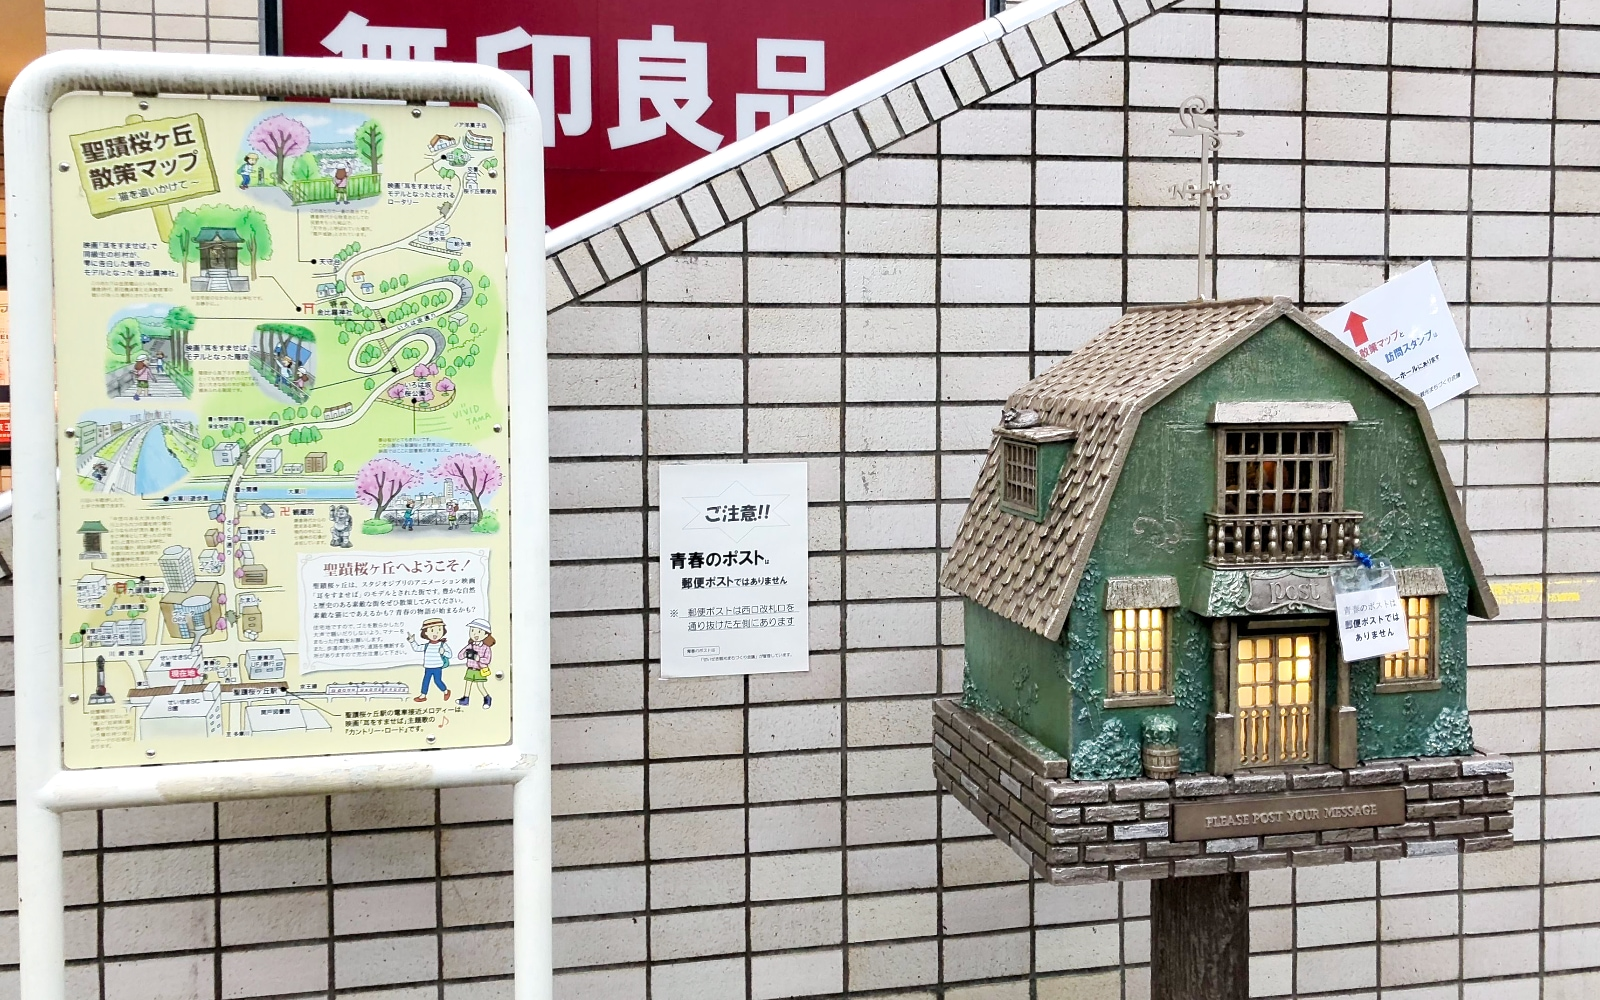 The Whisper of the Heart map and mailbox near Seiseki-Sakuragaoka station in Tama, Tokyo.